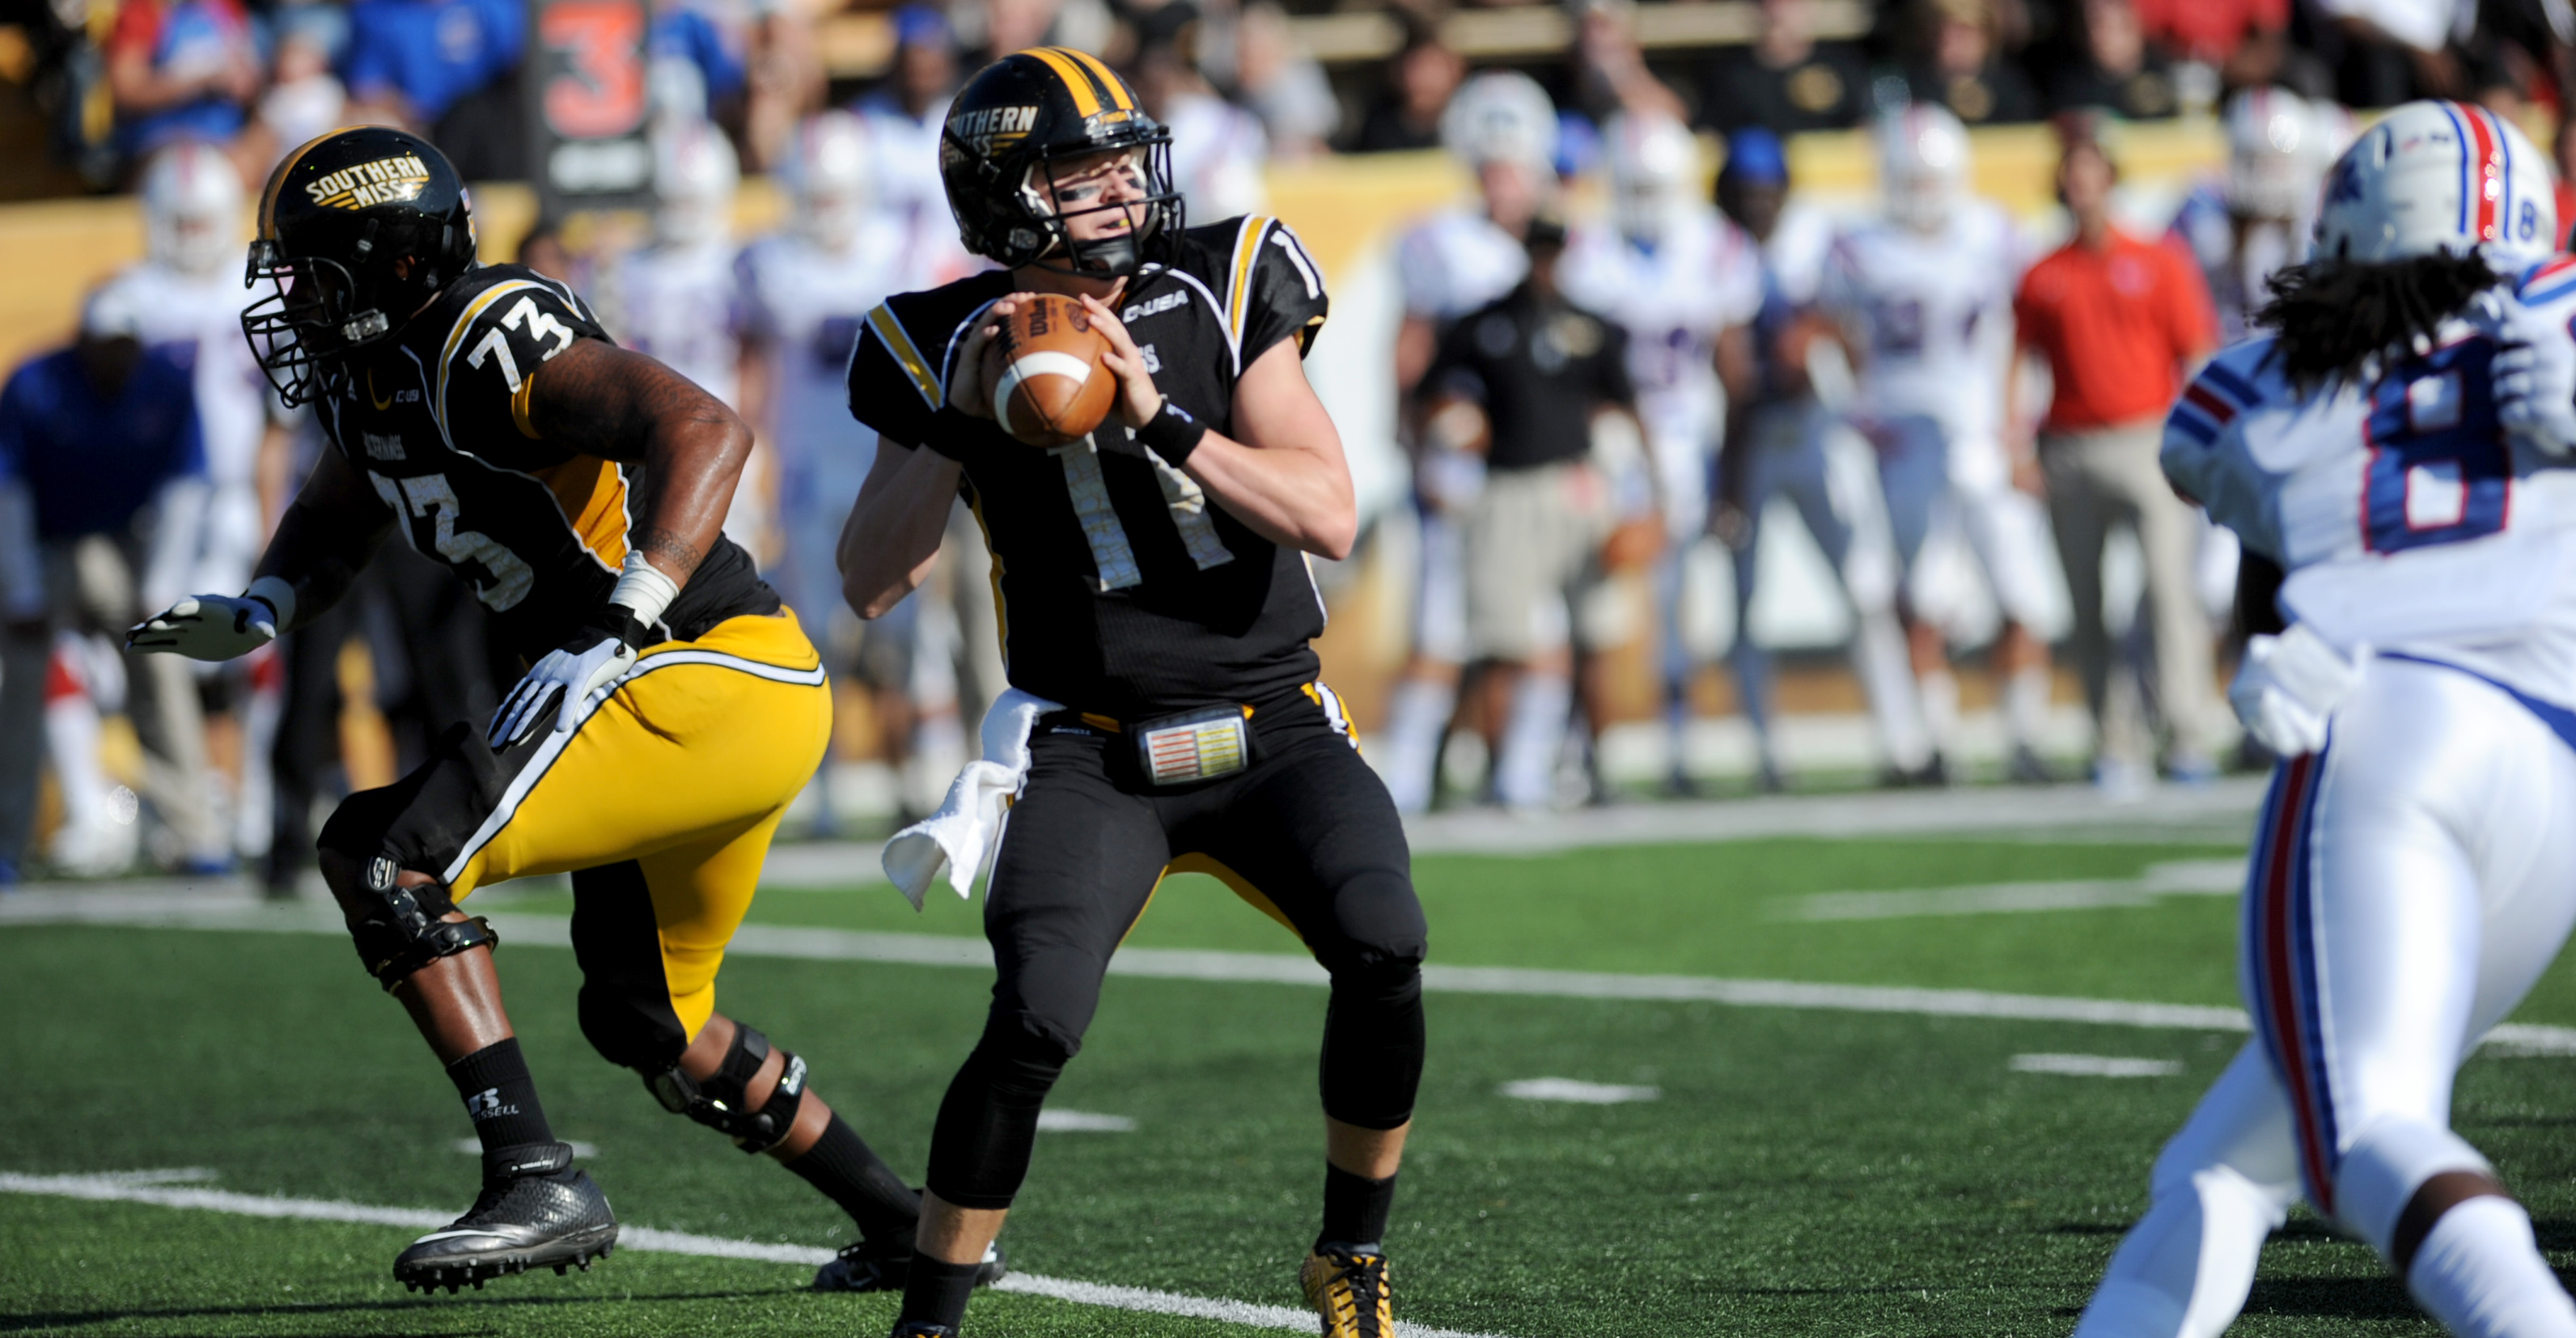 Southern Miss quarterback Cole Weeks goes for a pass against La. Tech in Hattiesburg, MS. Saturday, Oct. 25, 2014.  This past weekend the Golden Eagles fell to UTEP, 35-14.- Susan Broadbridge/Printz